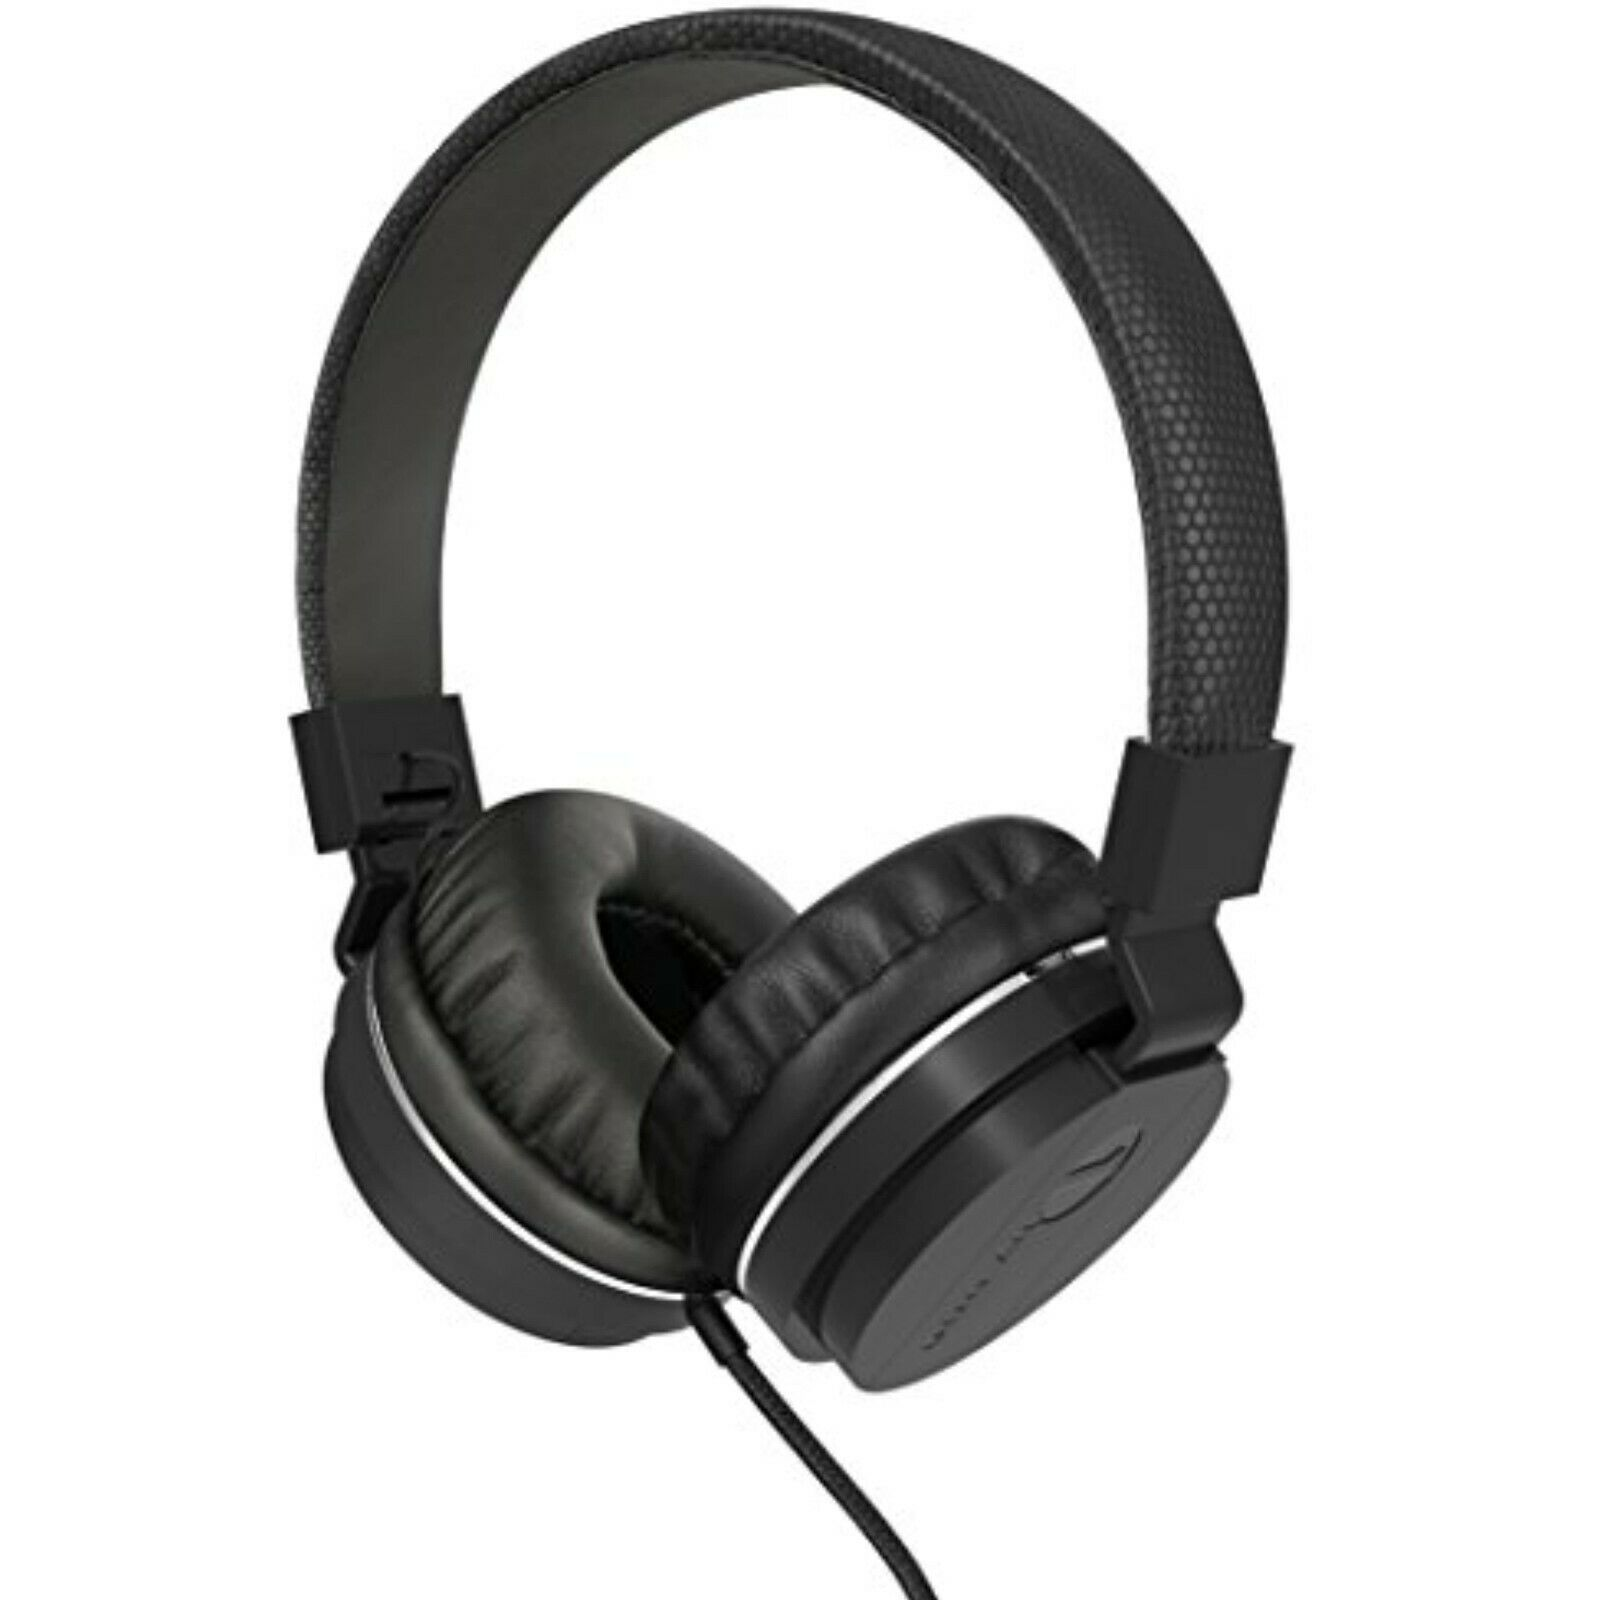 1byone Children Wired Headset, Portable Foldable with Stereo Bass, Black